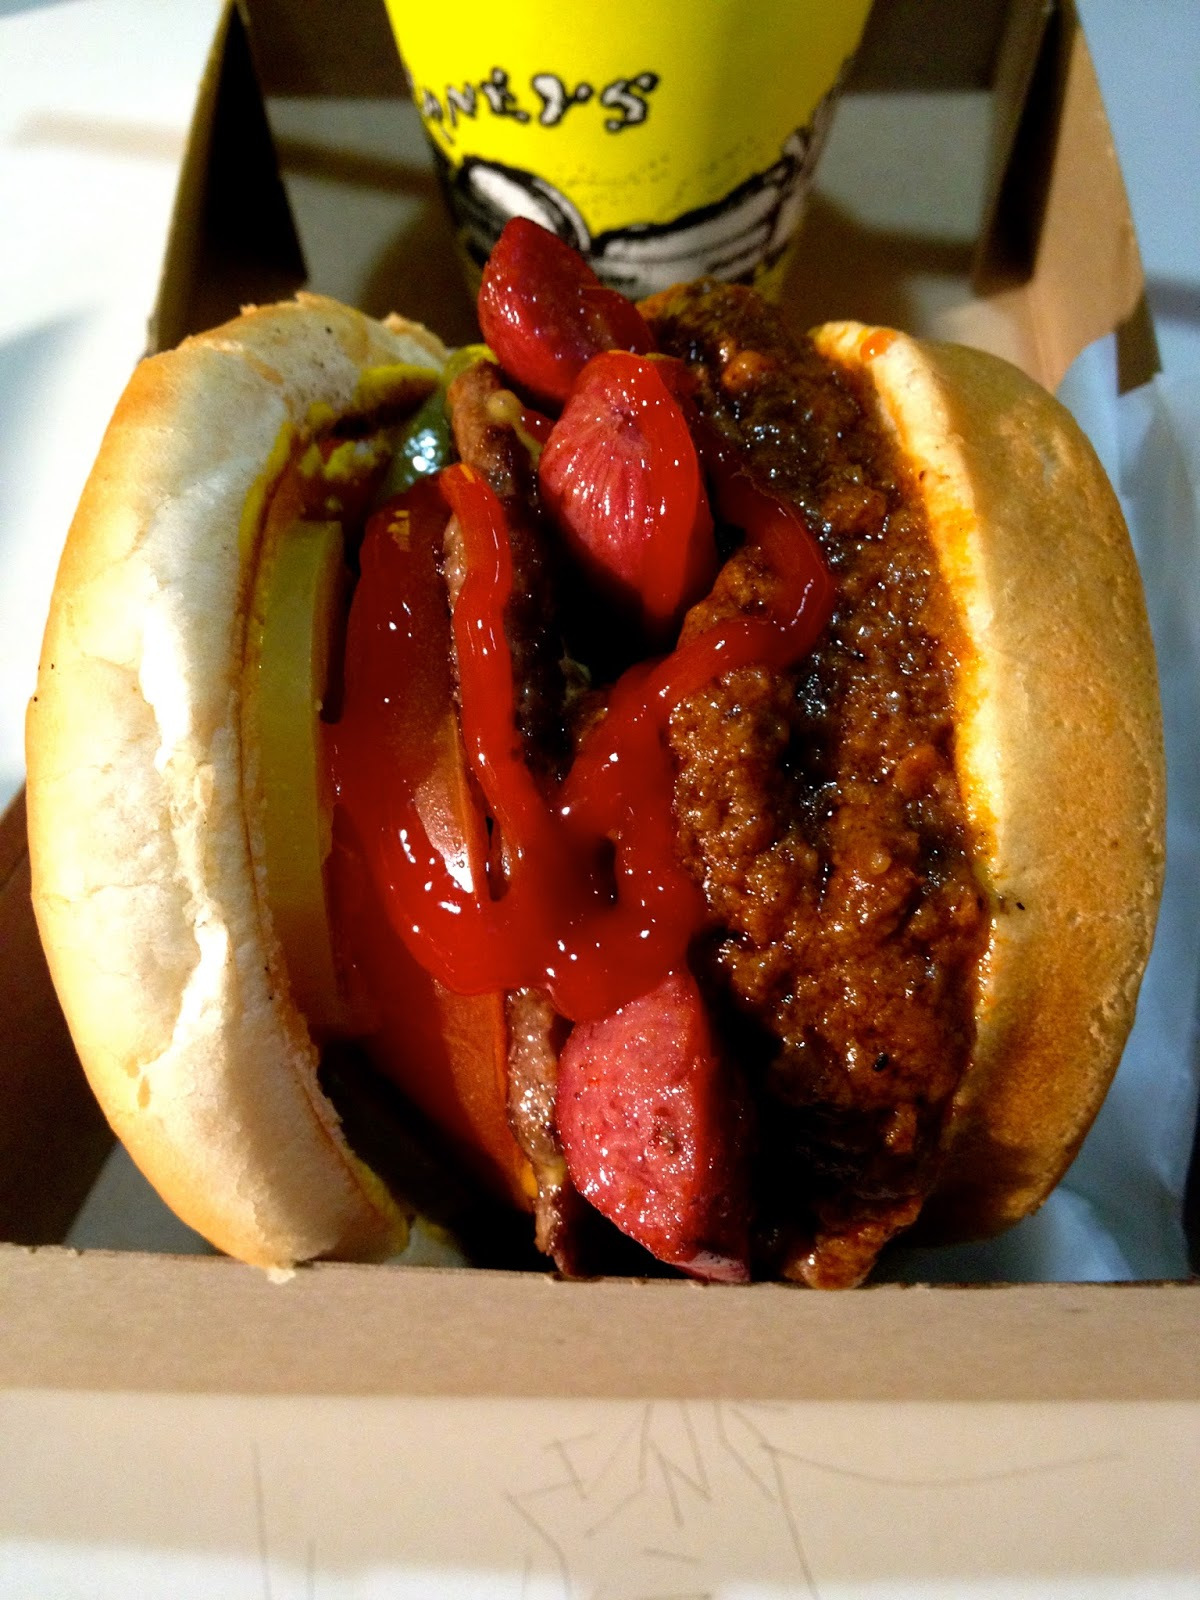 best chili burger in los angeles